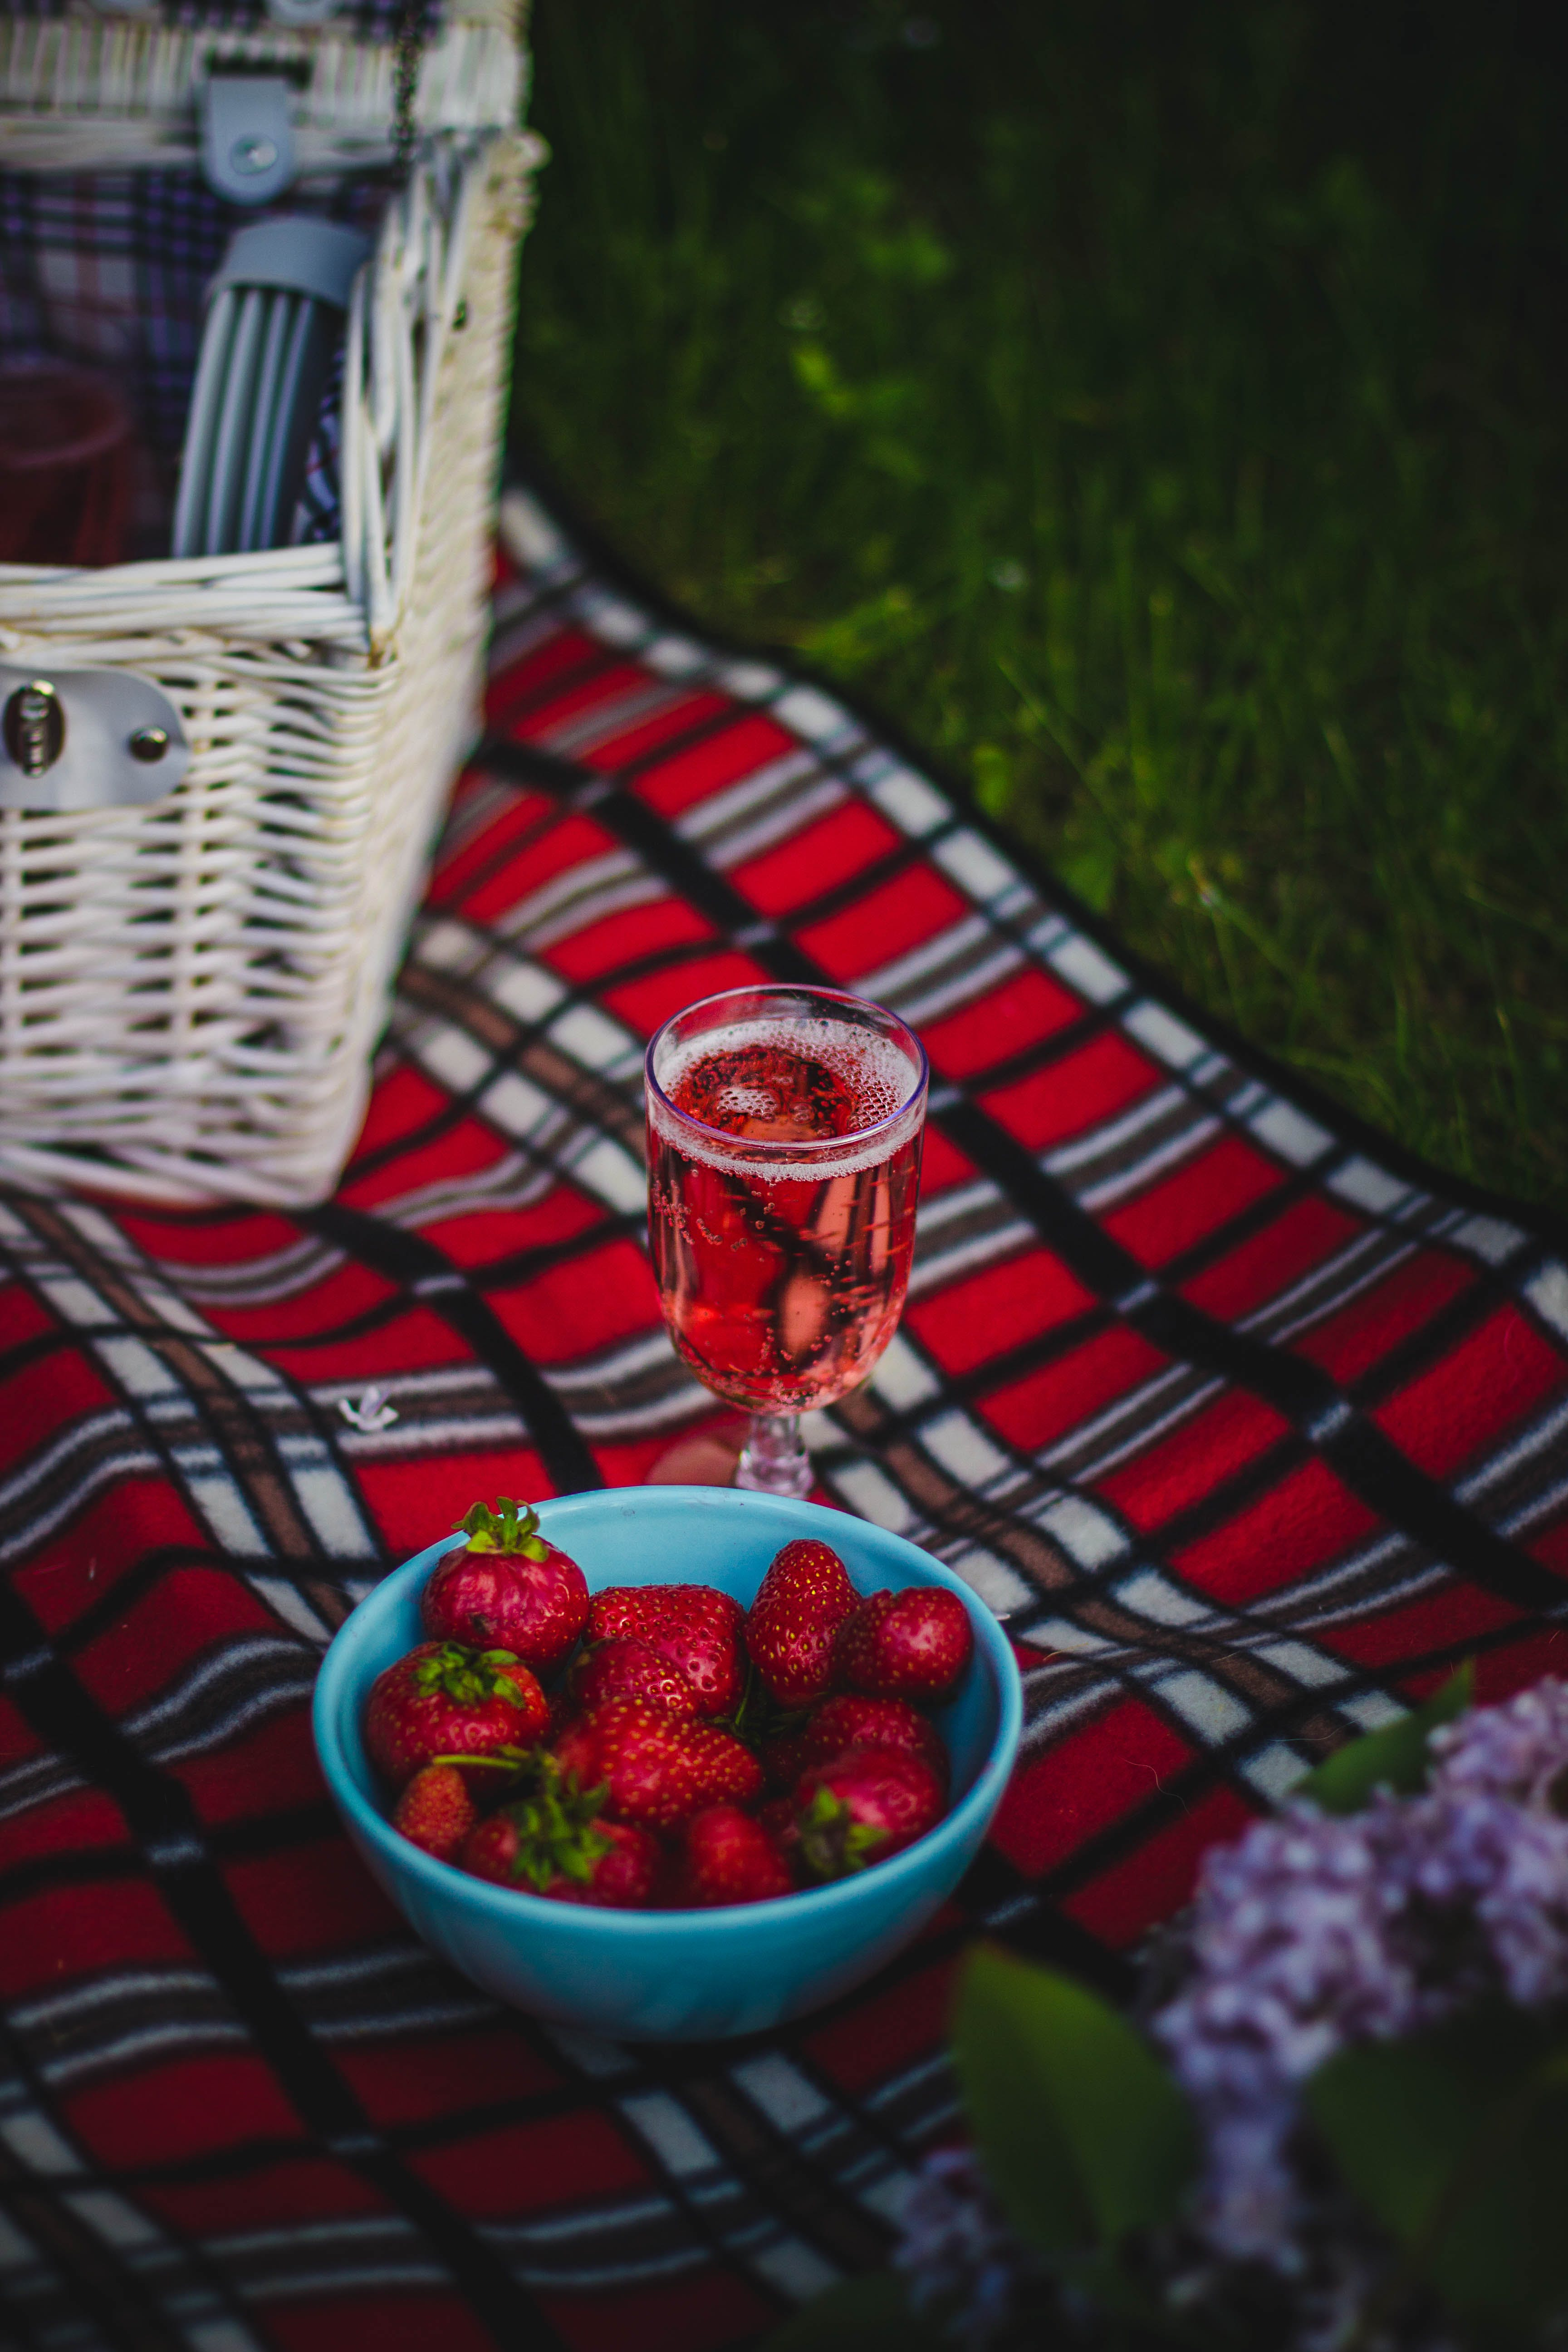 Clear Wine Glass With Wine Near Strawberry Fruit on Red White and Black Plaid Textile